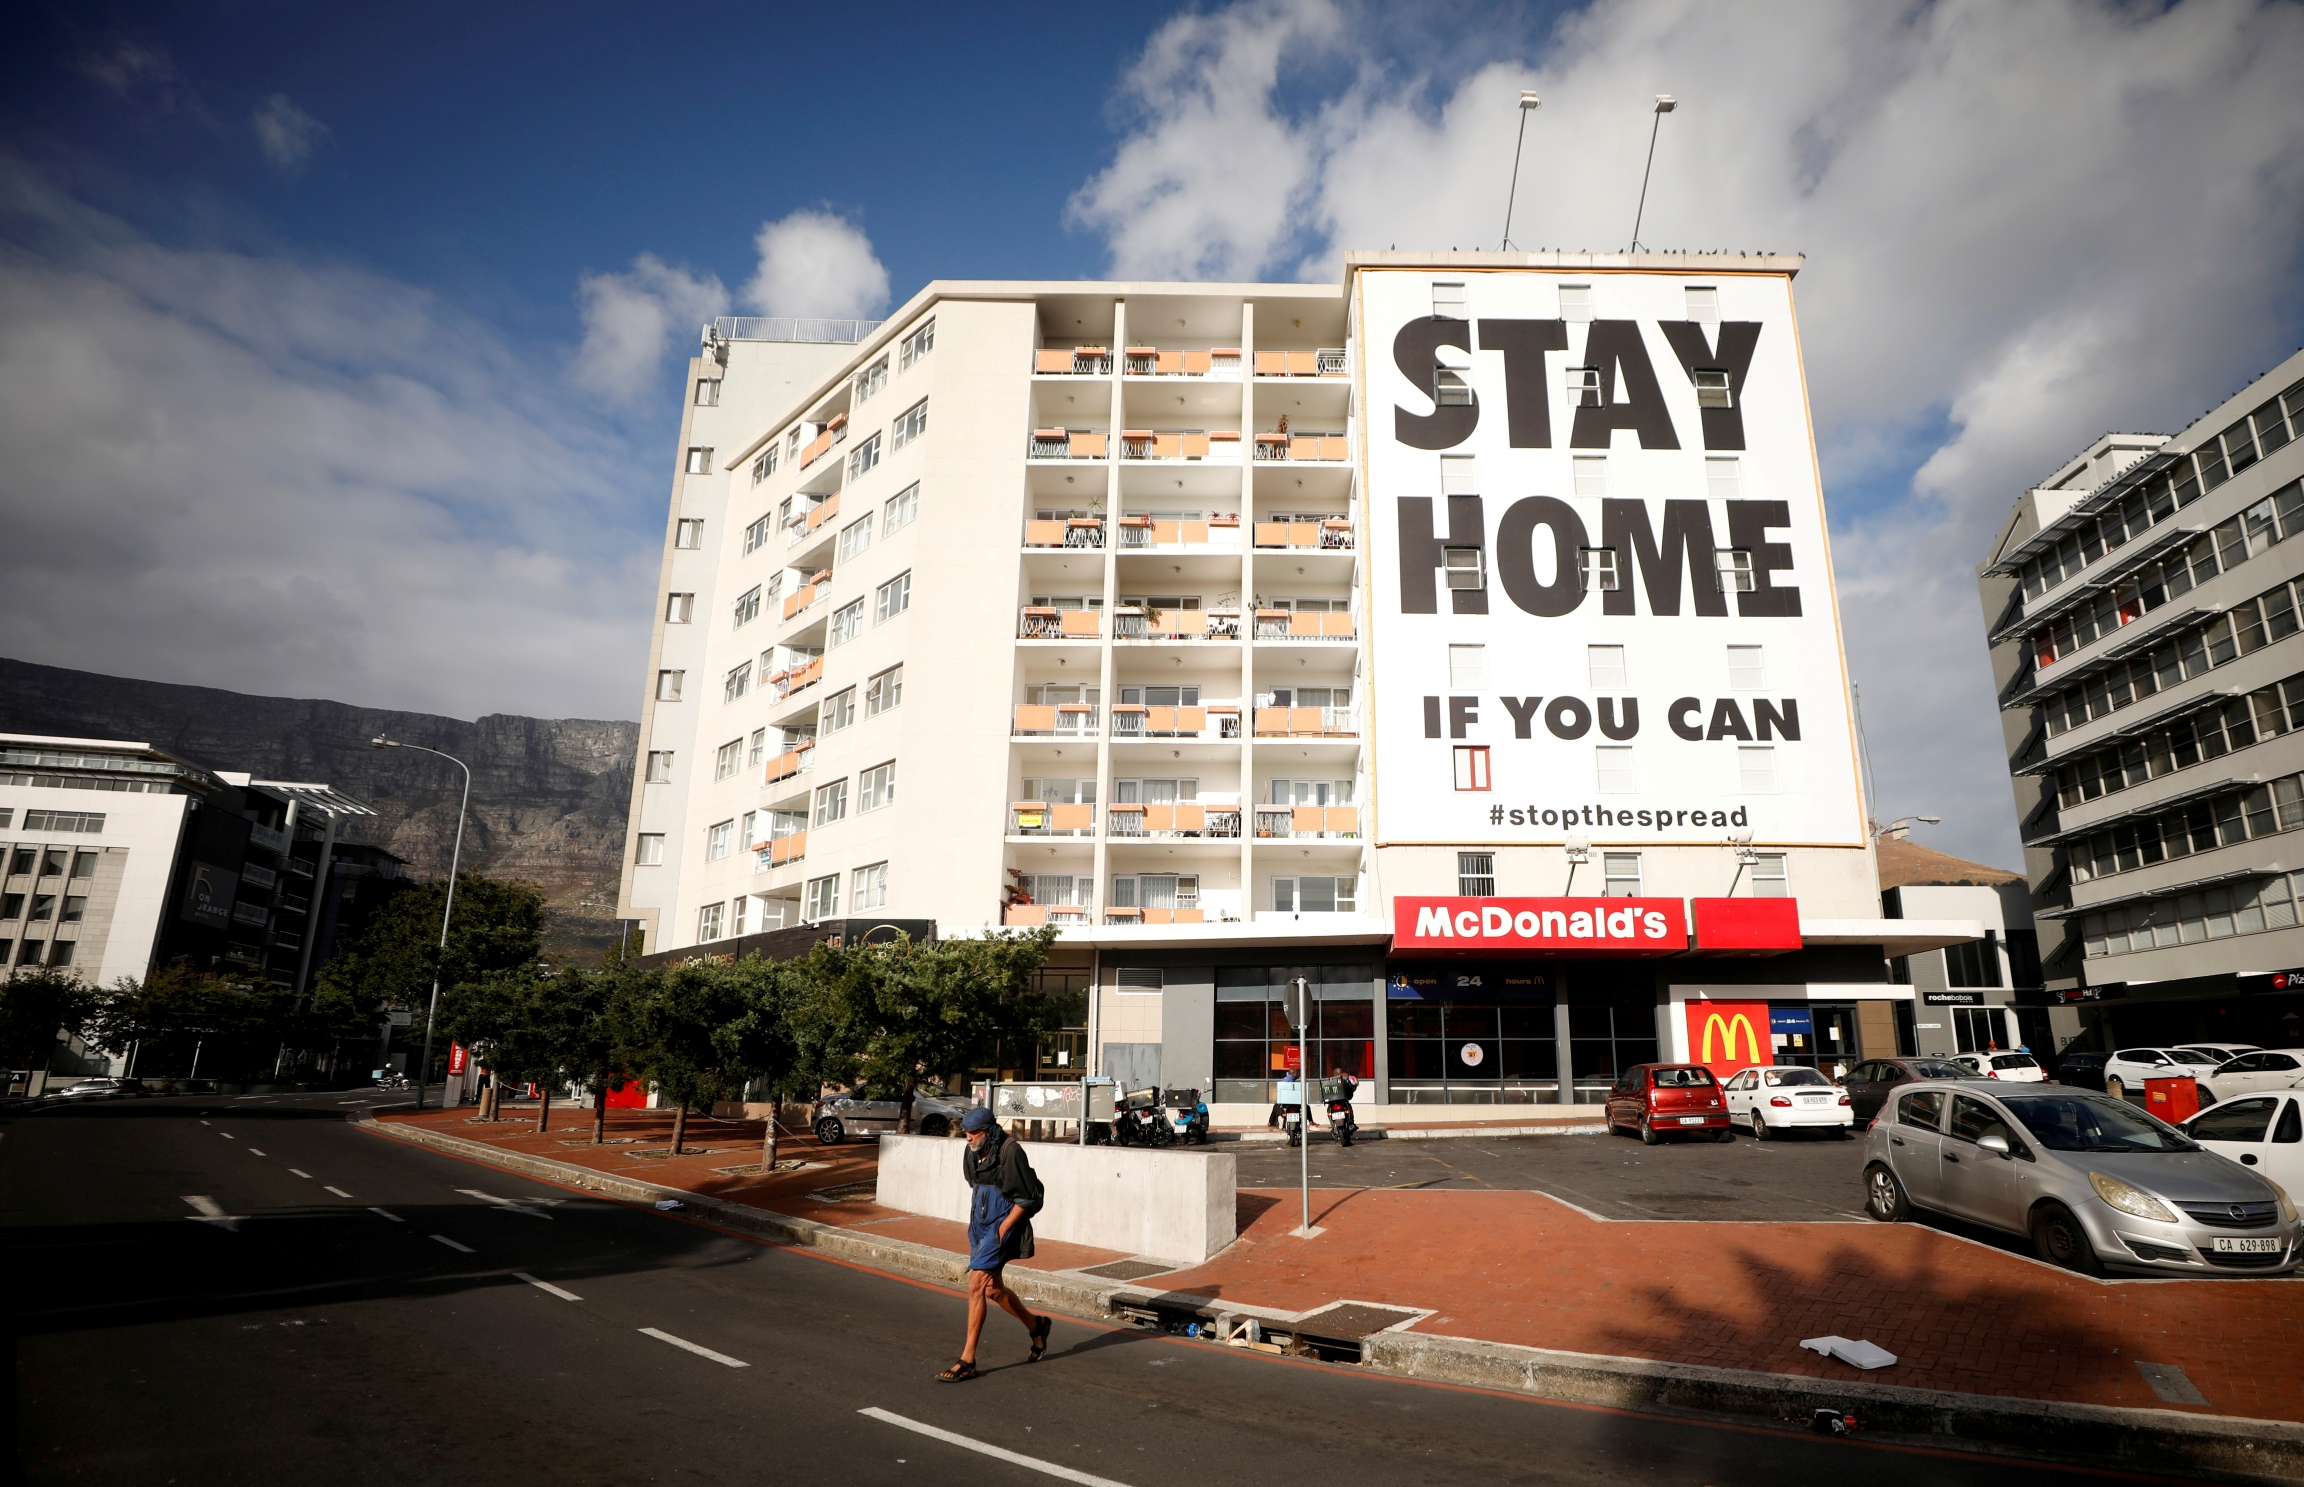 Stay at home sign in South Africa